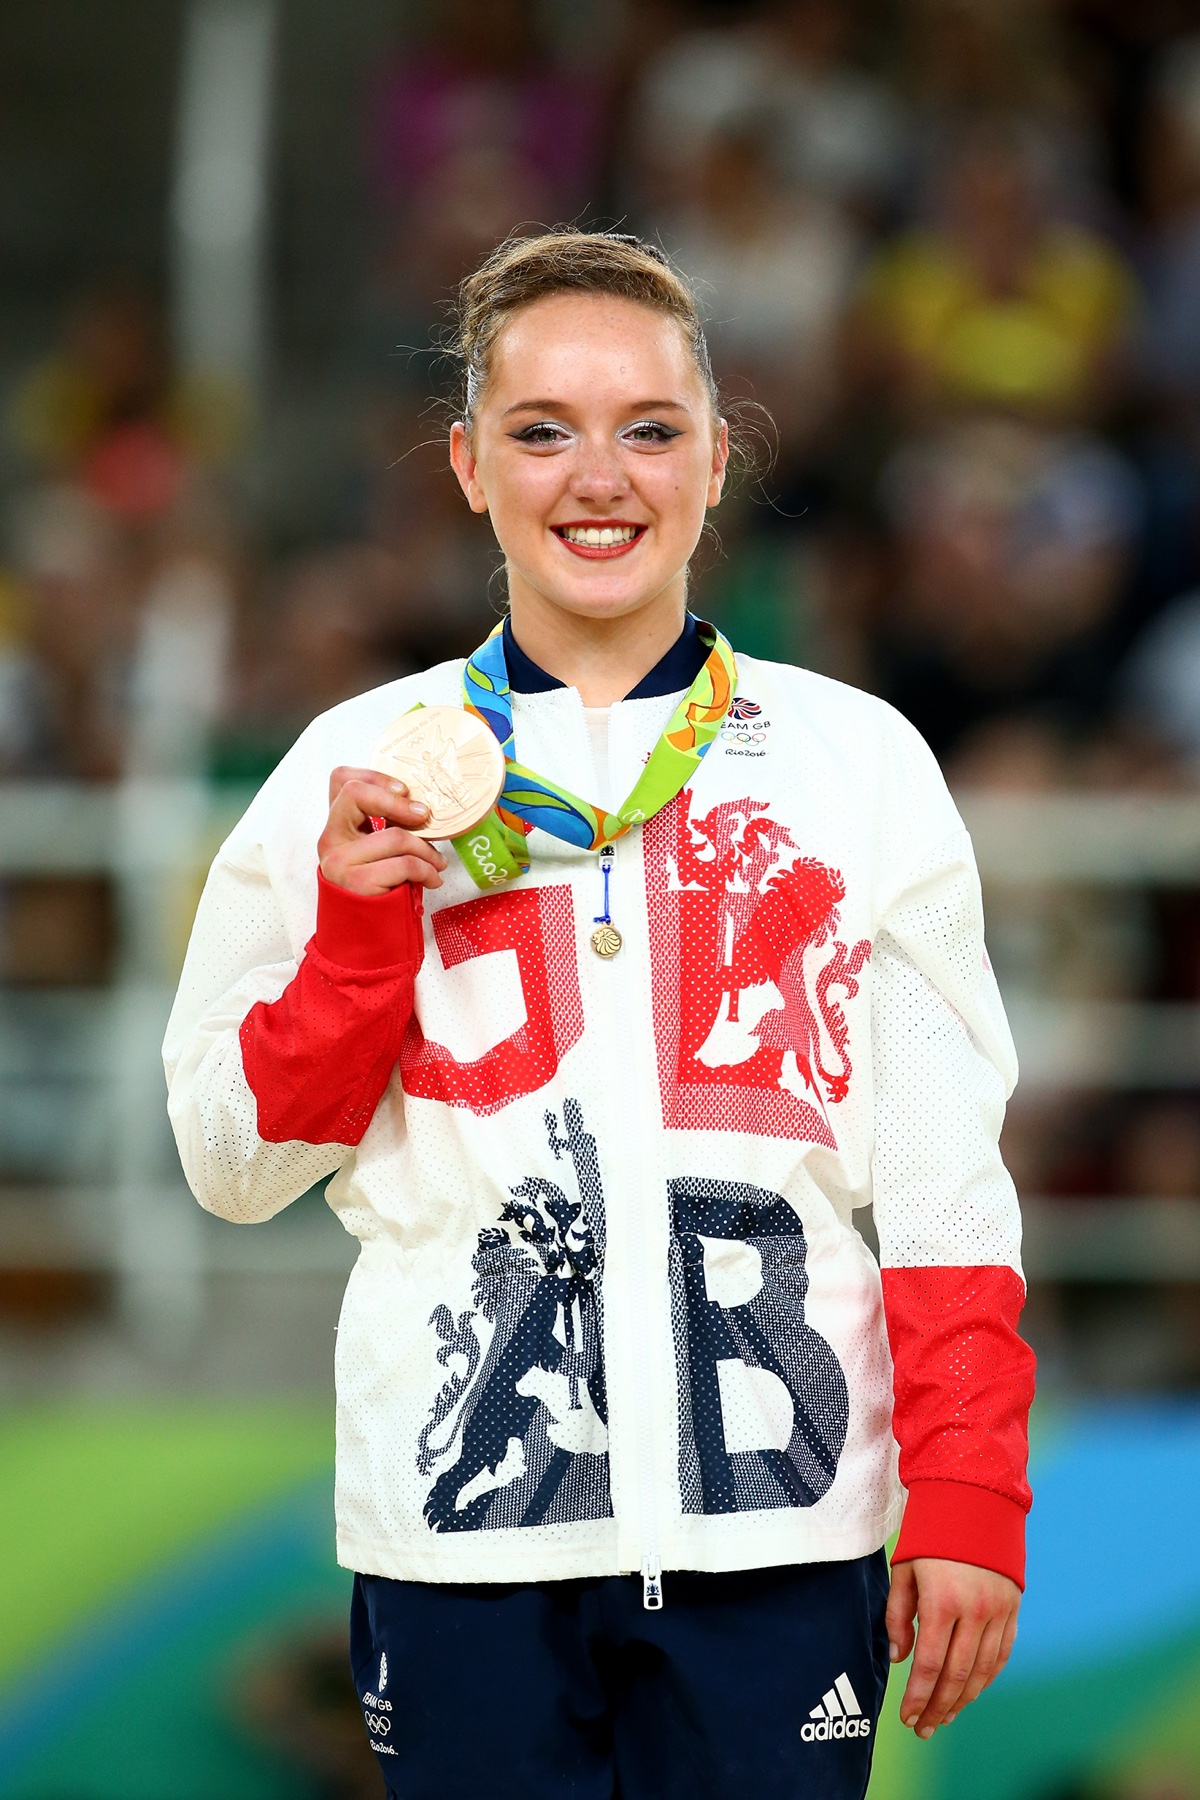 Amy Tinkler winning historical floor medal for Team GB at the Rio 2016 Olympic Games